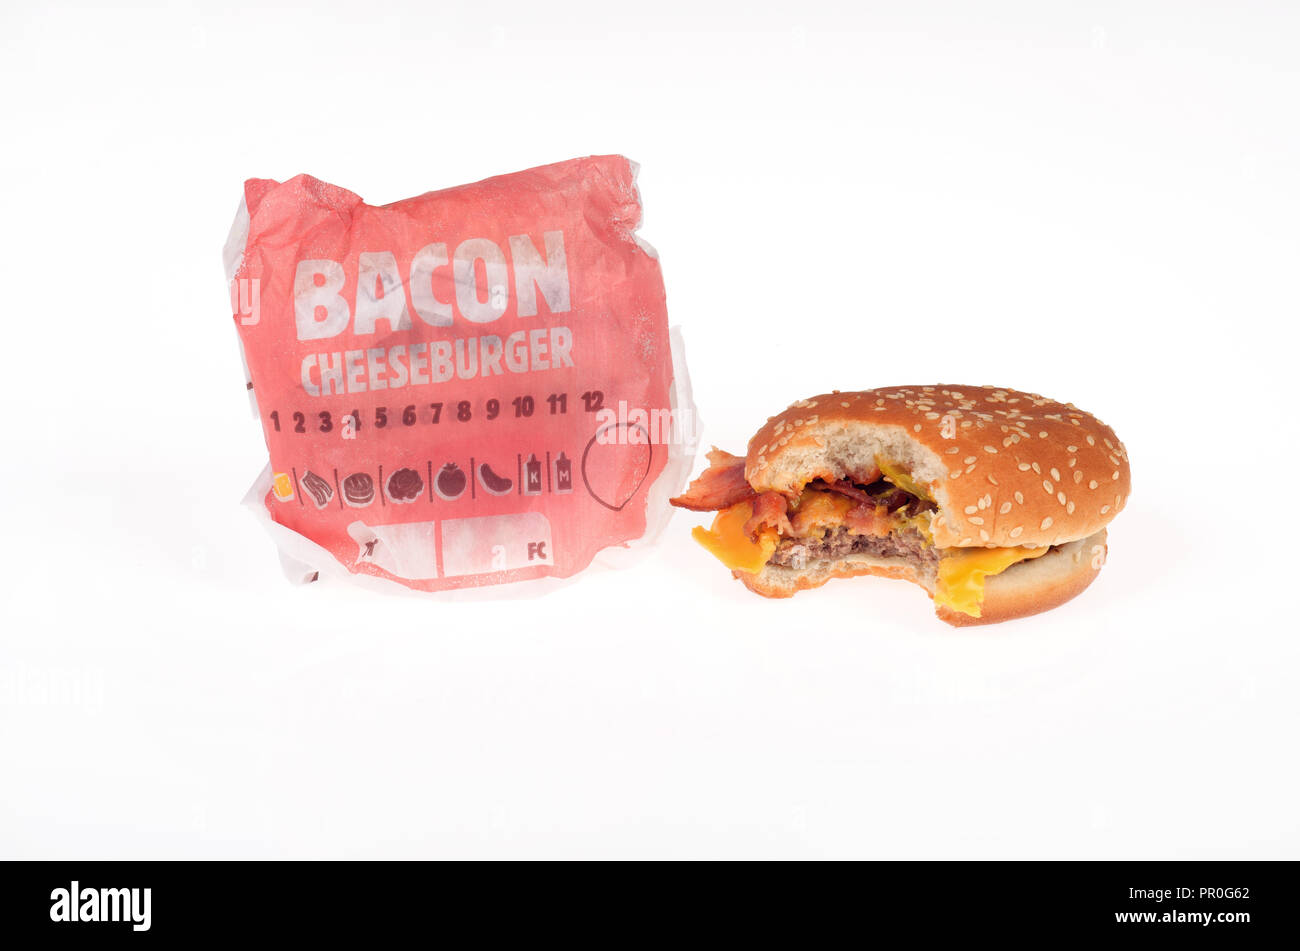 2 Burger King bacon cheeseburgers, one with a bite taken out and one in wrapper - Stock Image